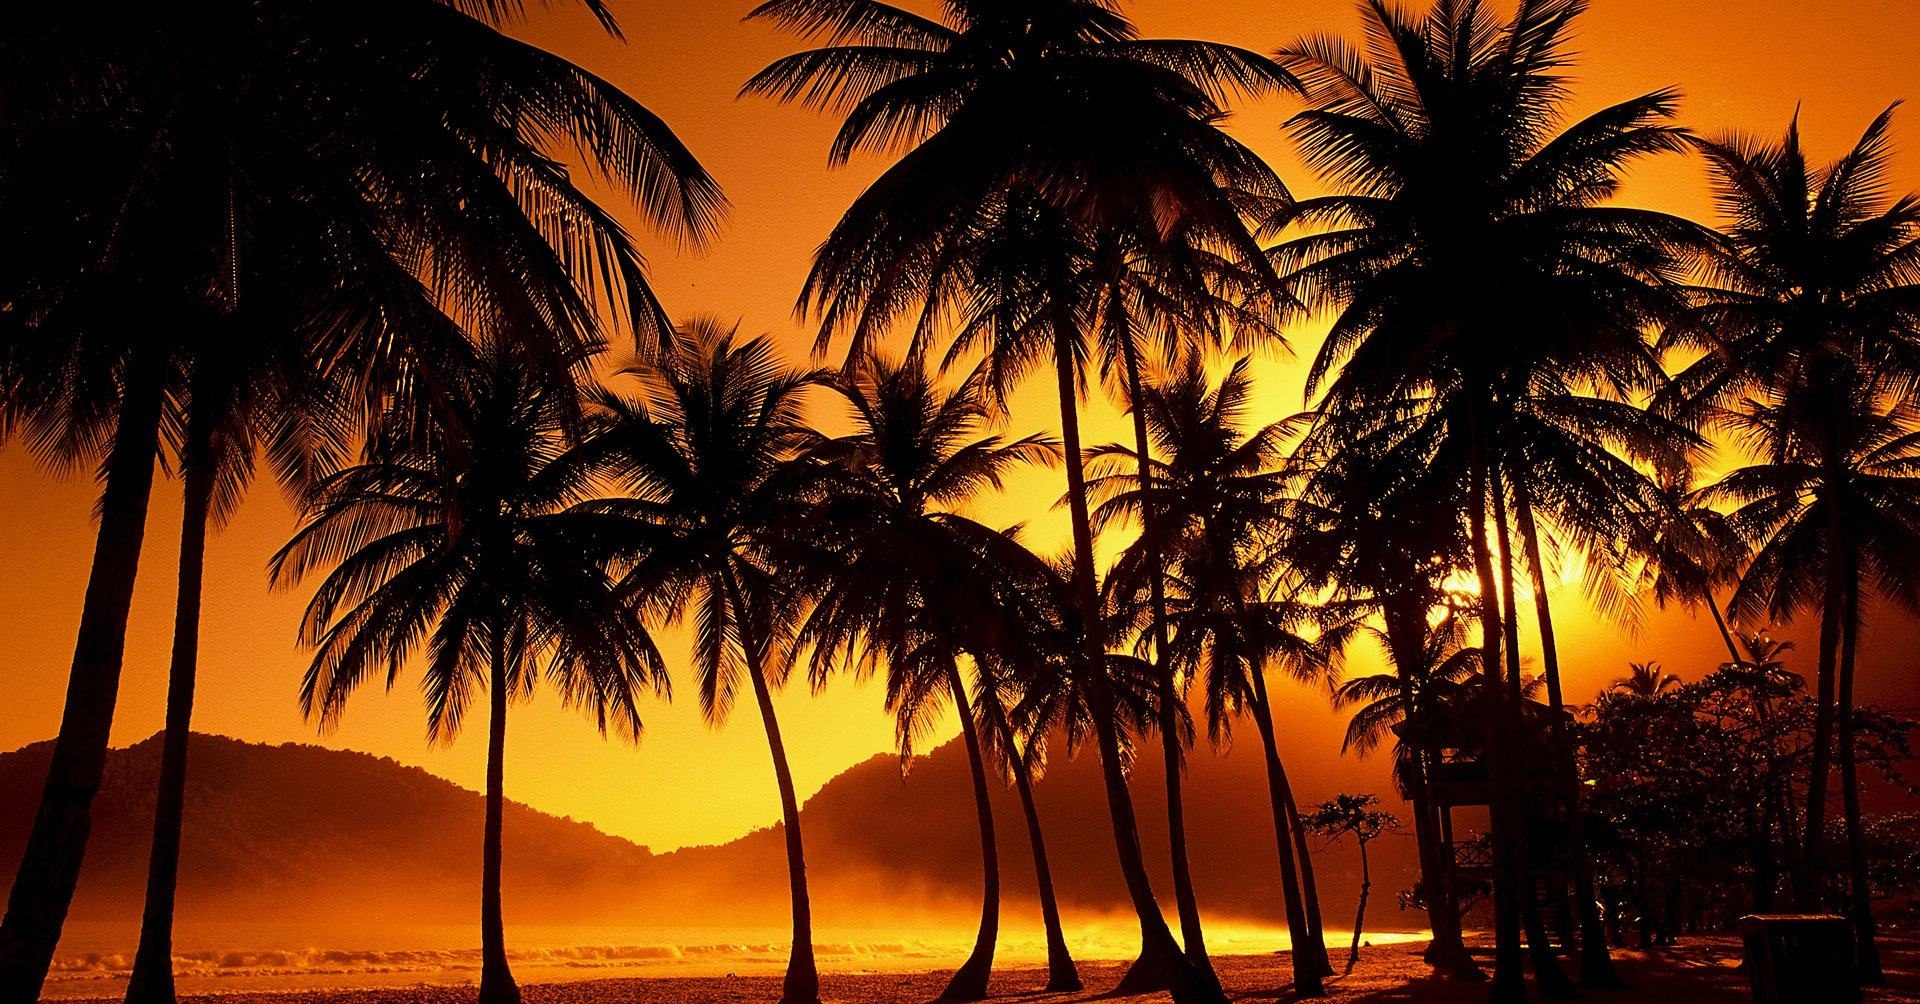 Palm Tree Desktop Wallpaper   HD Wallpapers Backgrounds of Your Choice 1920x1004